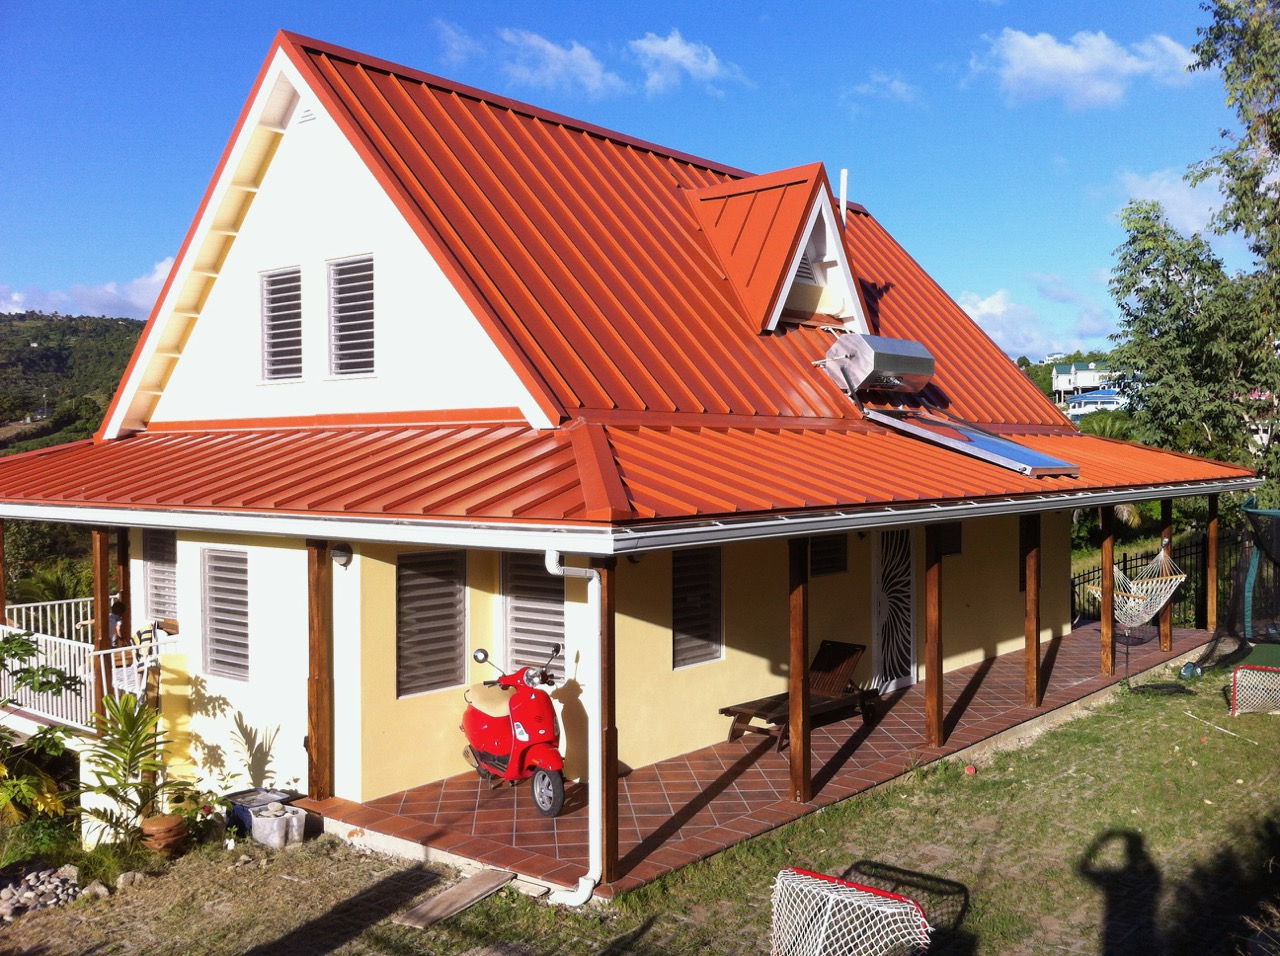 Home for Sale in Choiseul St Lucia